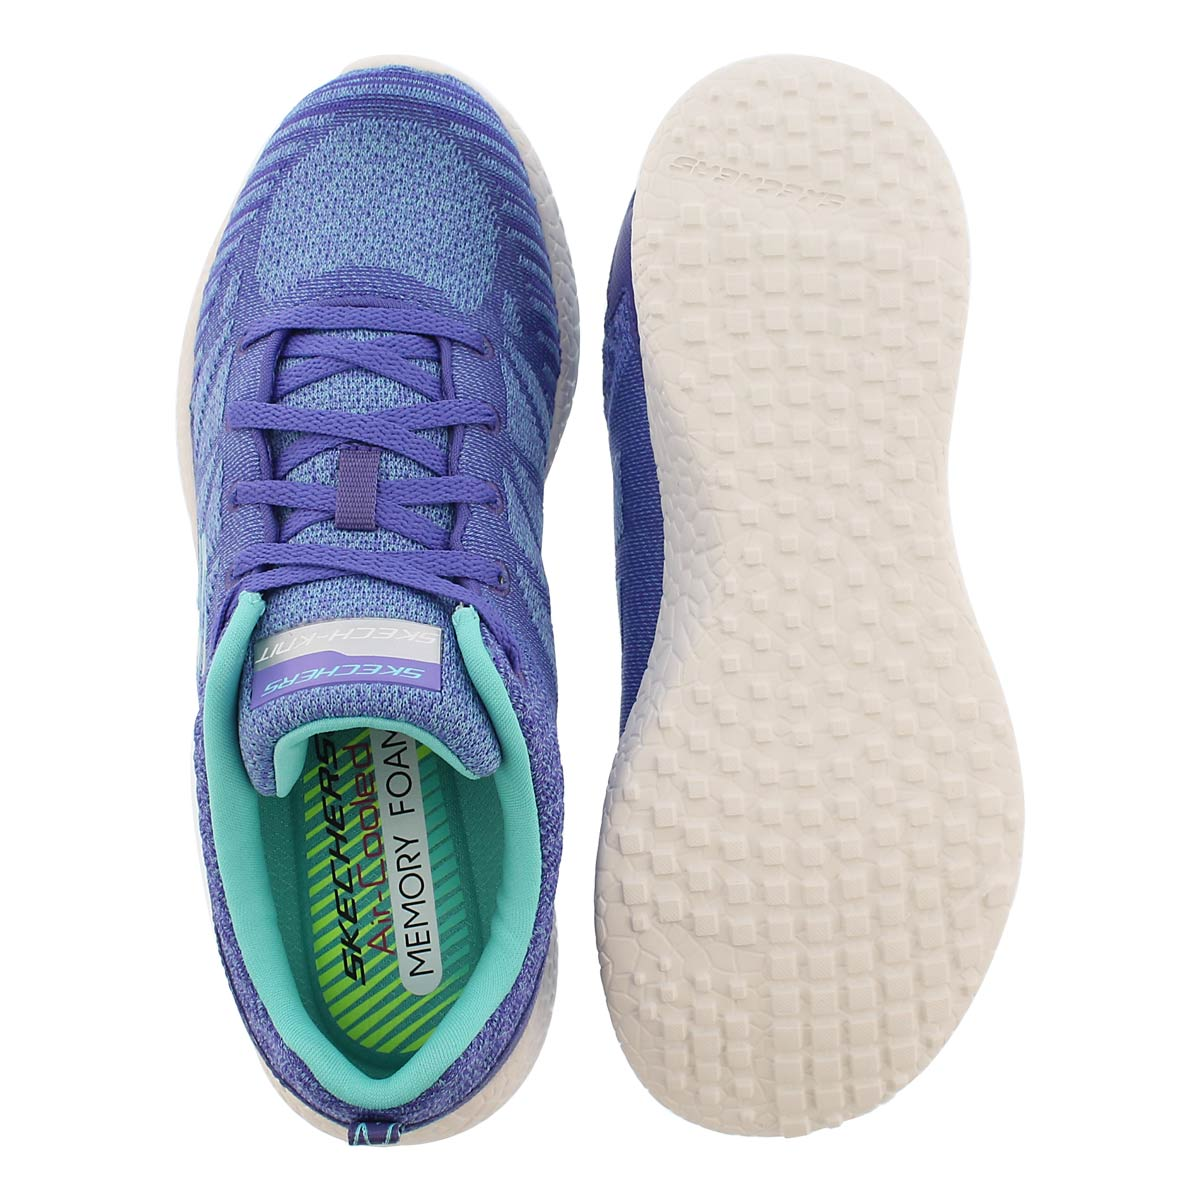 Lds Burst purple lace up sneaker